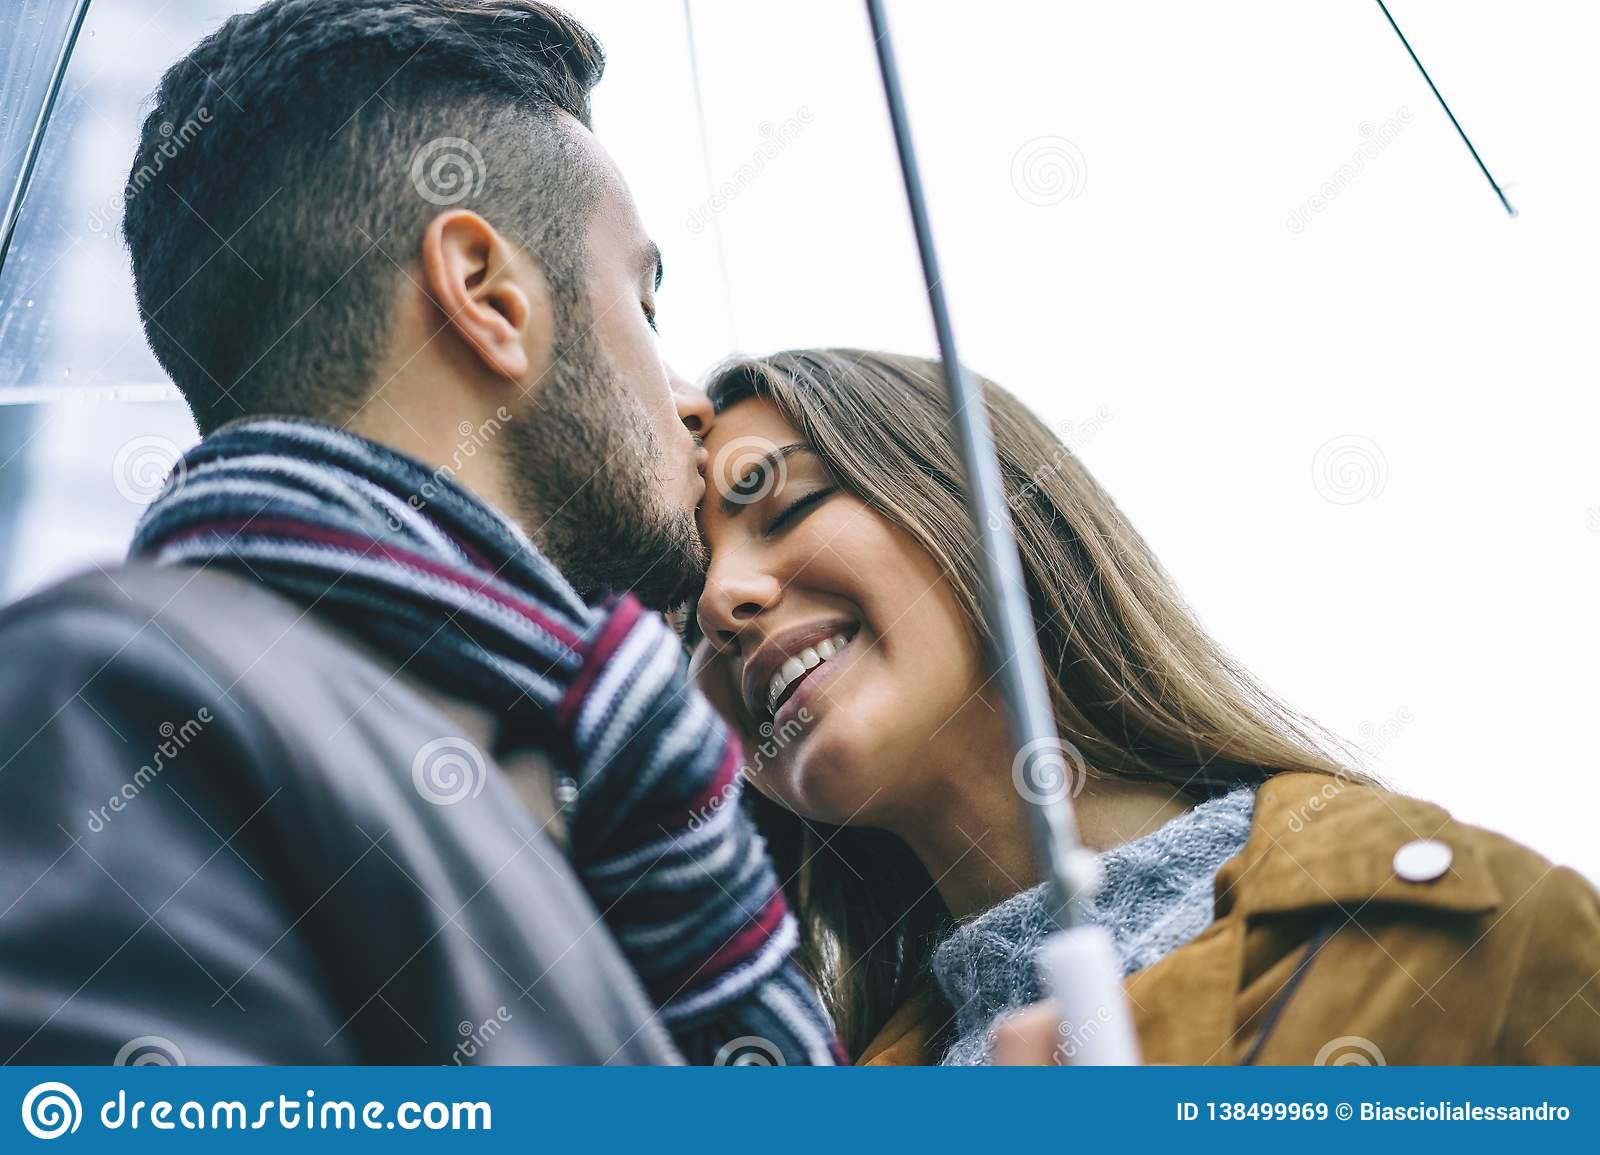 Happy couple kissing under an umbrella in a rainy day - Handsome man kiss his forehead girlfriend under the rain - Love, people,